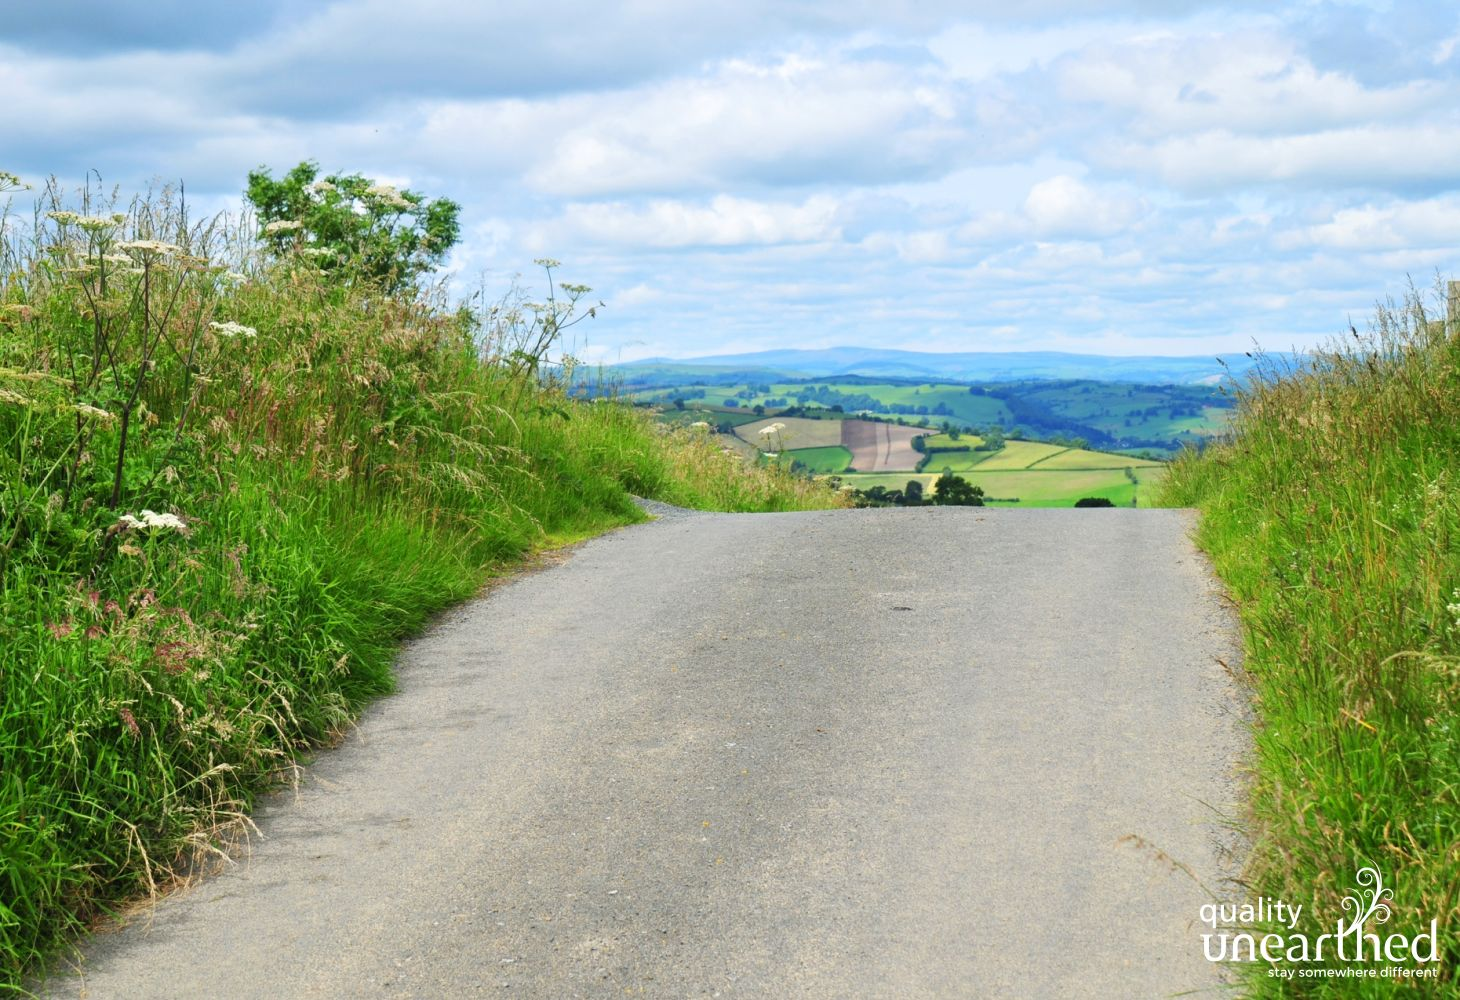 A view of the crest of a hill with the Mid Wales rolling countryside that surrounds the wooden cabin in the distance